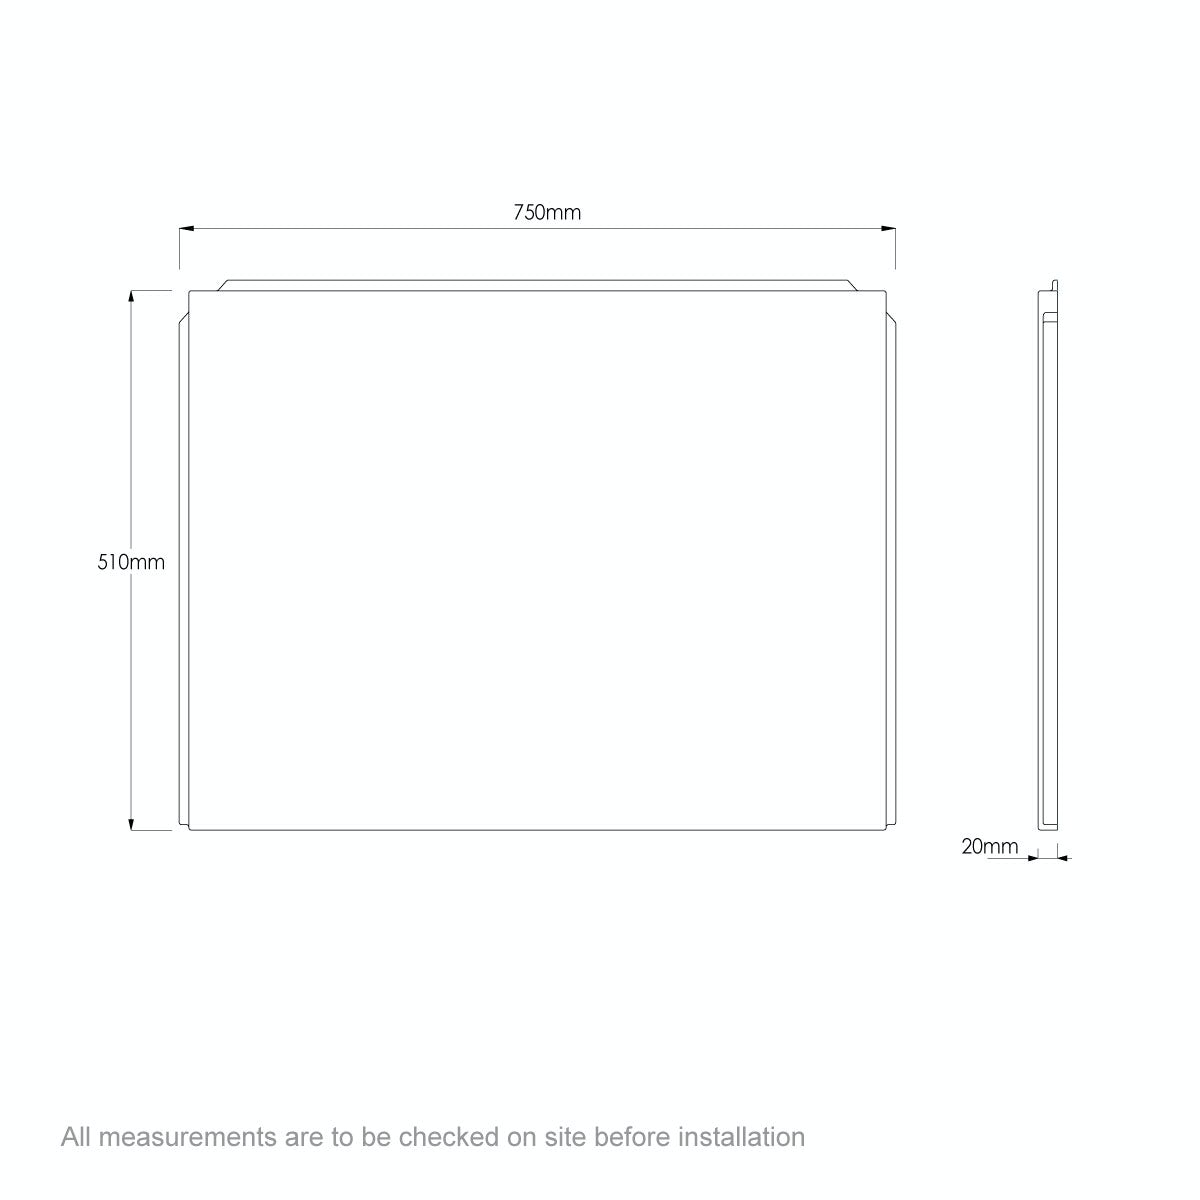 Dimensions for Orchard P shaped shower bath acrylic end panel 750mm